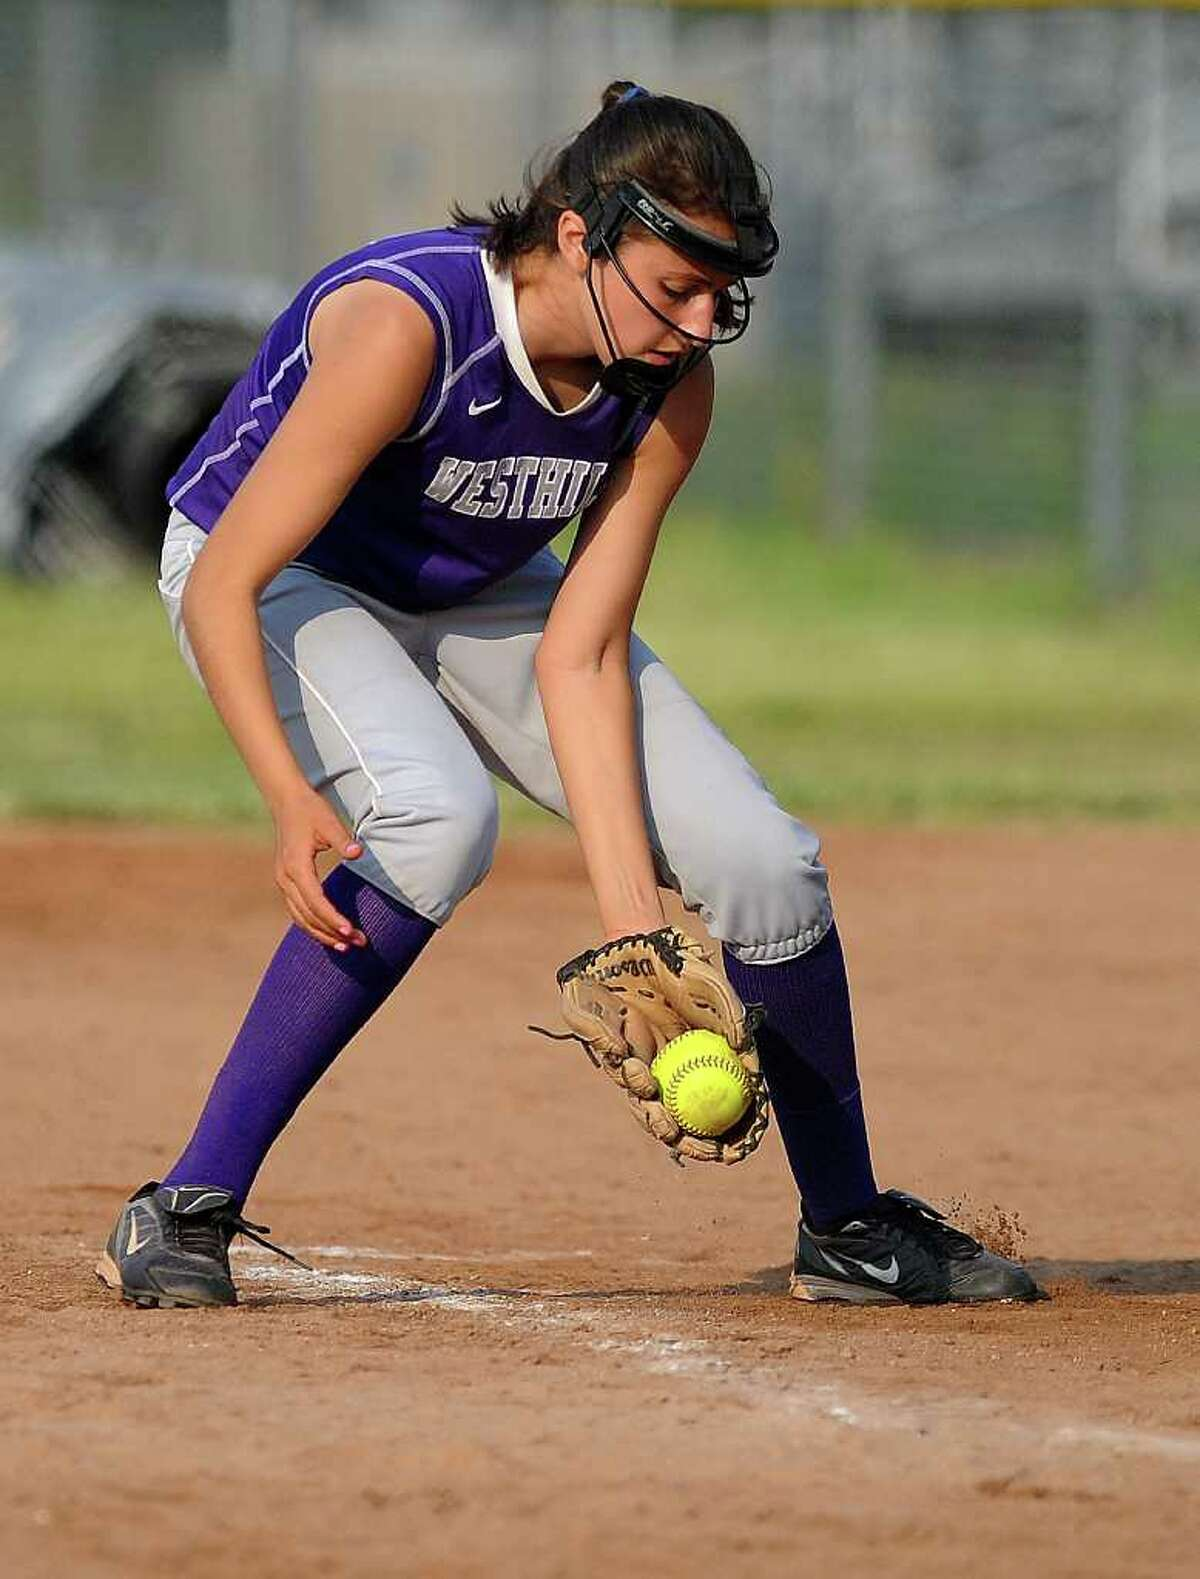 Westhill's Megan D'Alessandro reaches for the ball during Tuesday's class LL semifinal game against Bristol Central at DeLuca Field in Stratford on June 7, 2011.